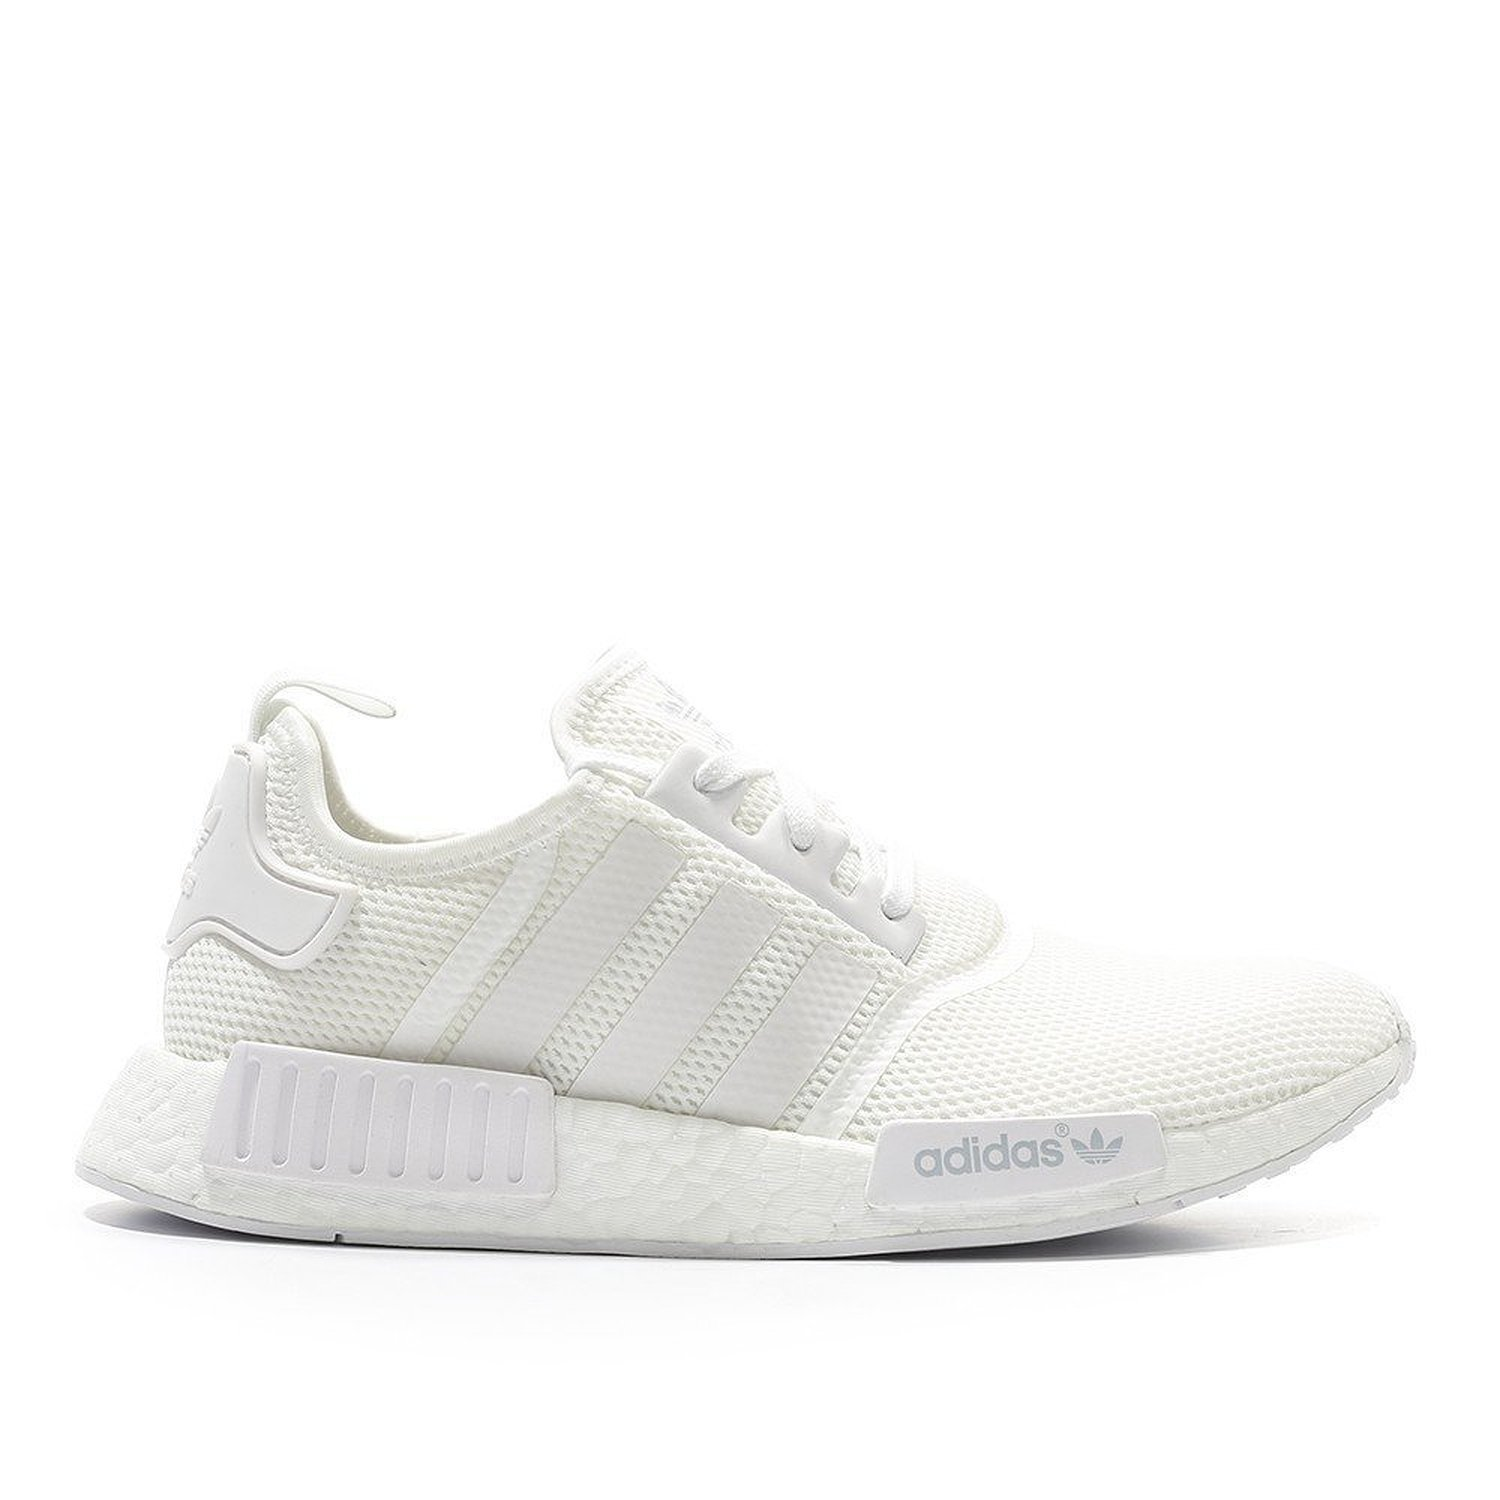 reputable site a28da 92d04 30%OFF New Men's Nmd R1 Shoes - cohstra.org